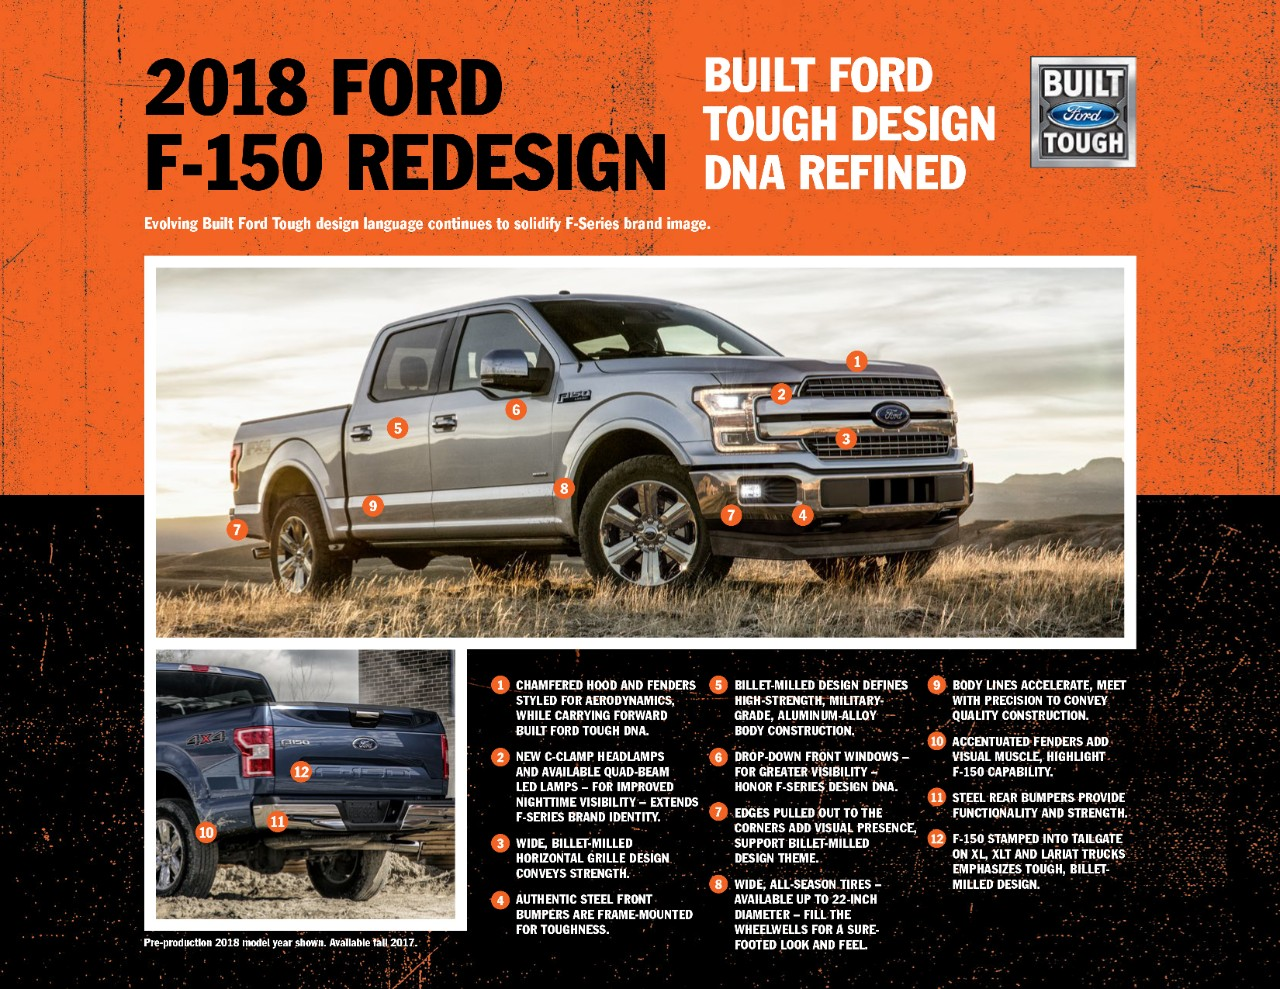 2018 Ford F-150 Design Emphasizes Proven Strengths - The ...